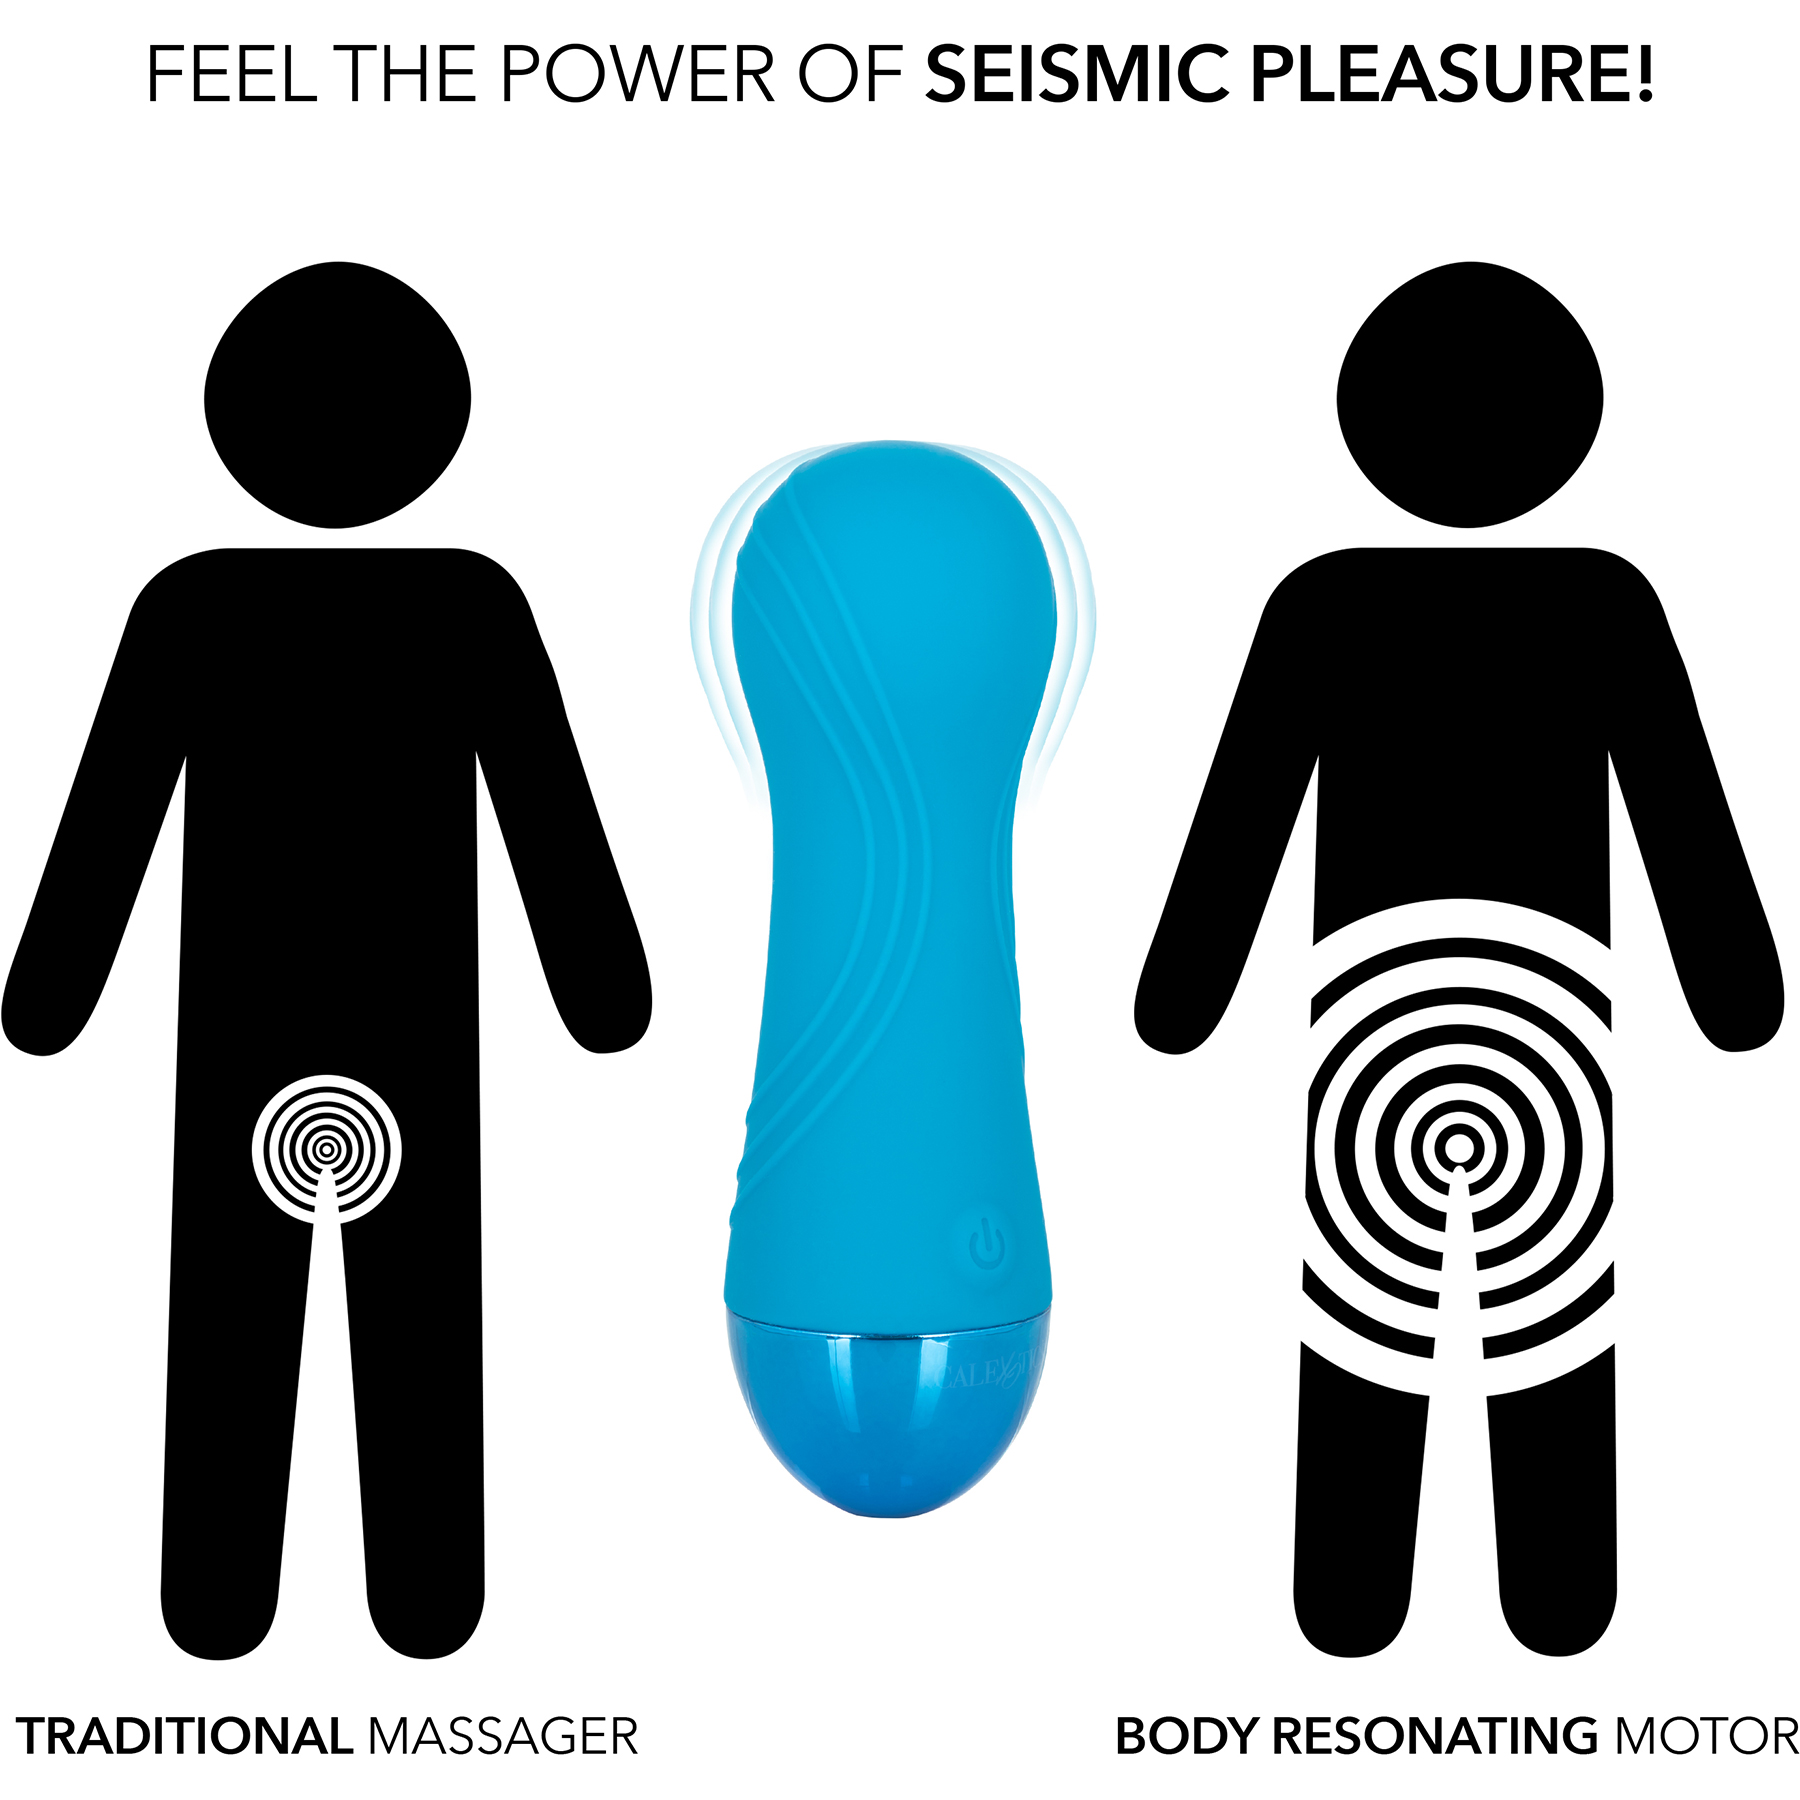 Tremble Tease Waterproof Rechargeable Silicone Seismic Vibrator - Comparison